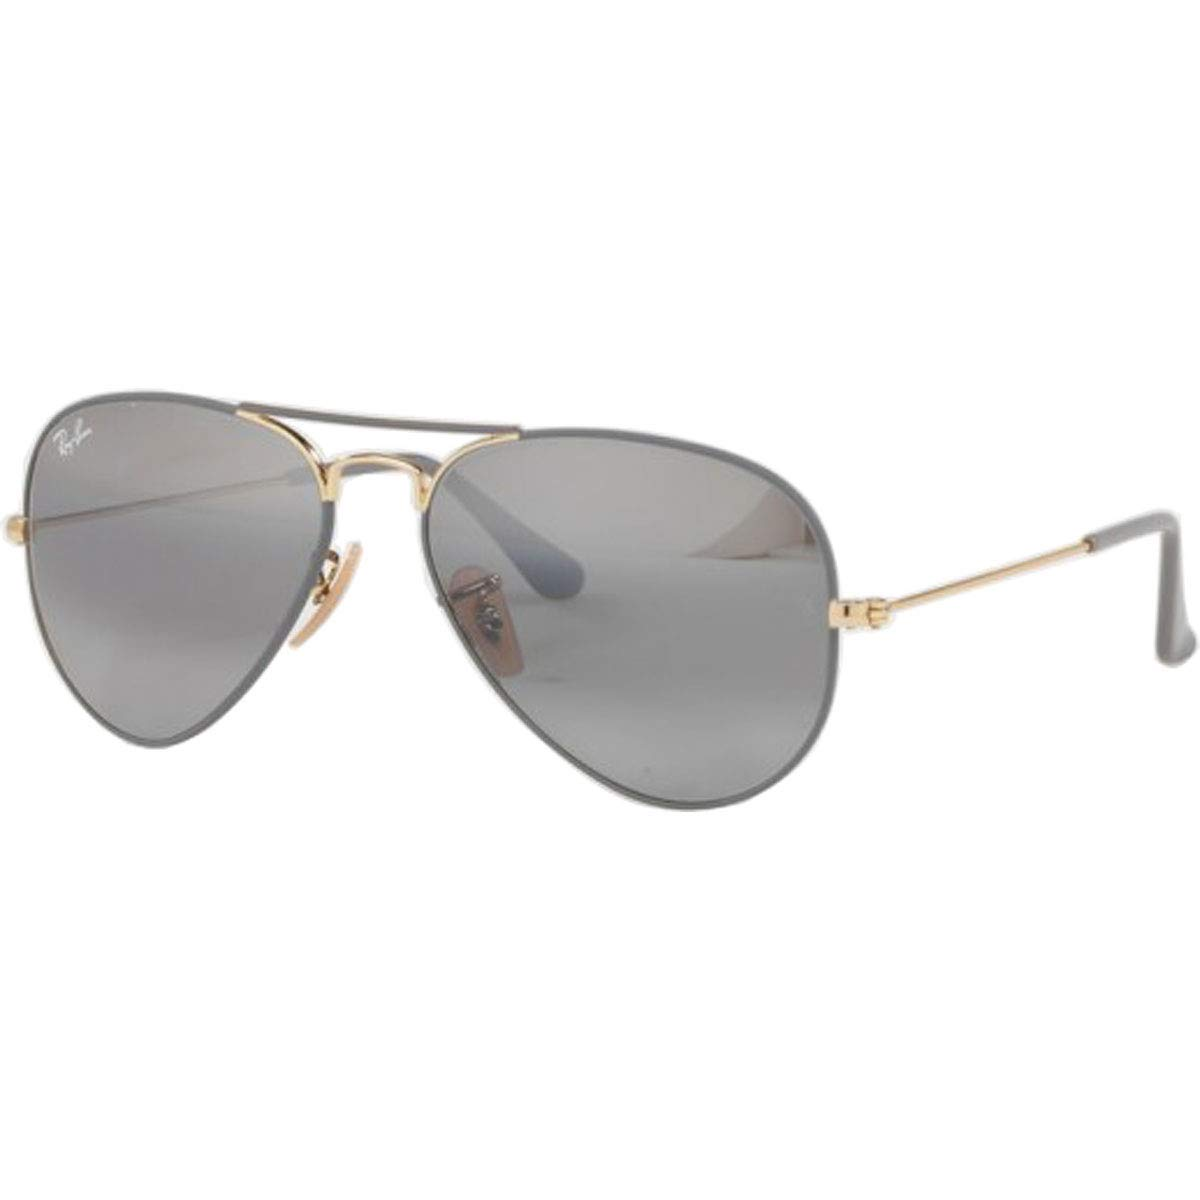 RAY-BAN RB3025 Aviator Large Metal Sunglasses, Matte Grey On Gold/Grey Gradient Mirror, 58 mm by RAY-BAN